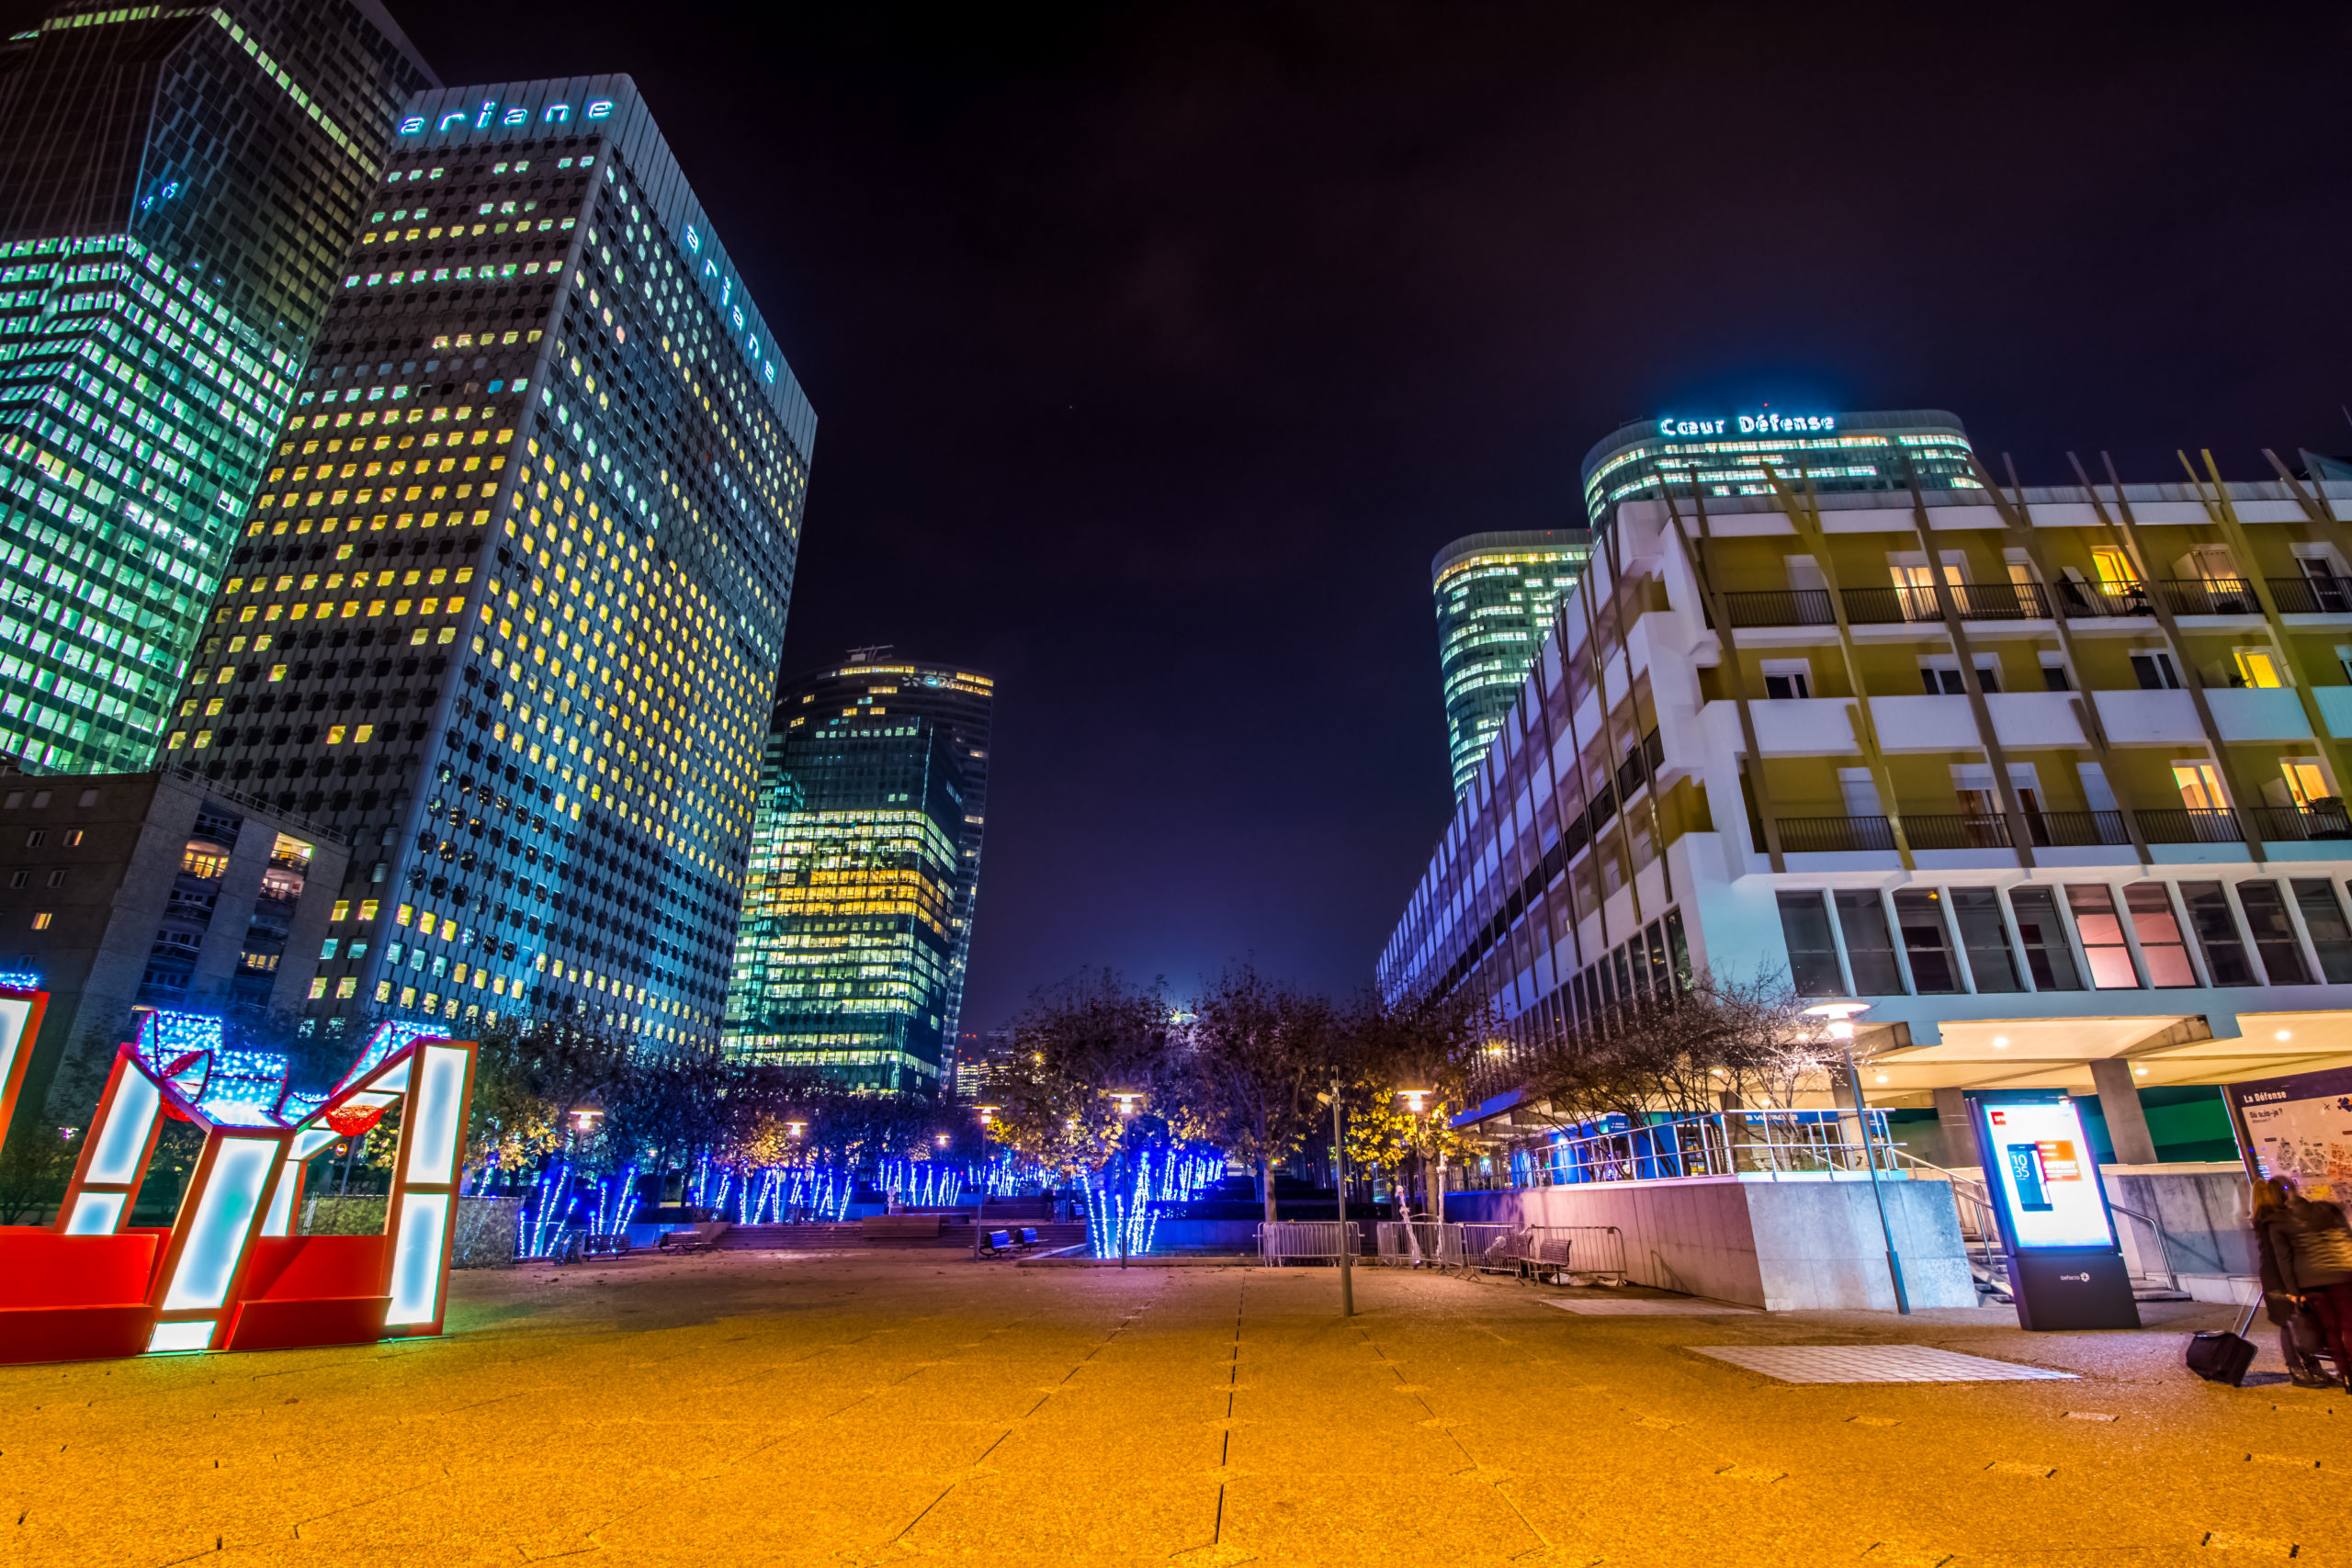 LA DÉFENSE – NIGHT (ACCÉLÉRÉ – HYPERLAPSE – TIMELAPSE) PARIS FRANCE